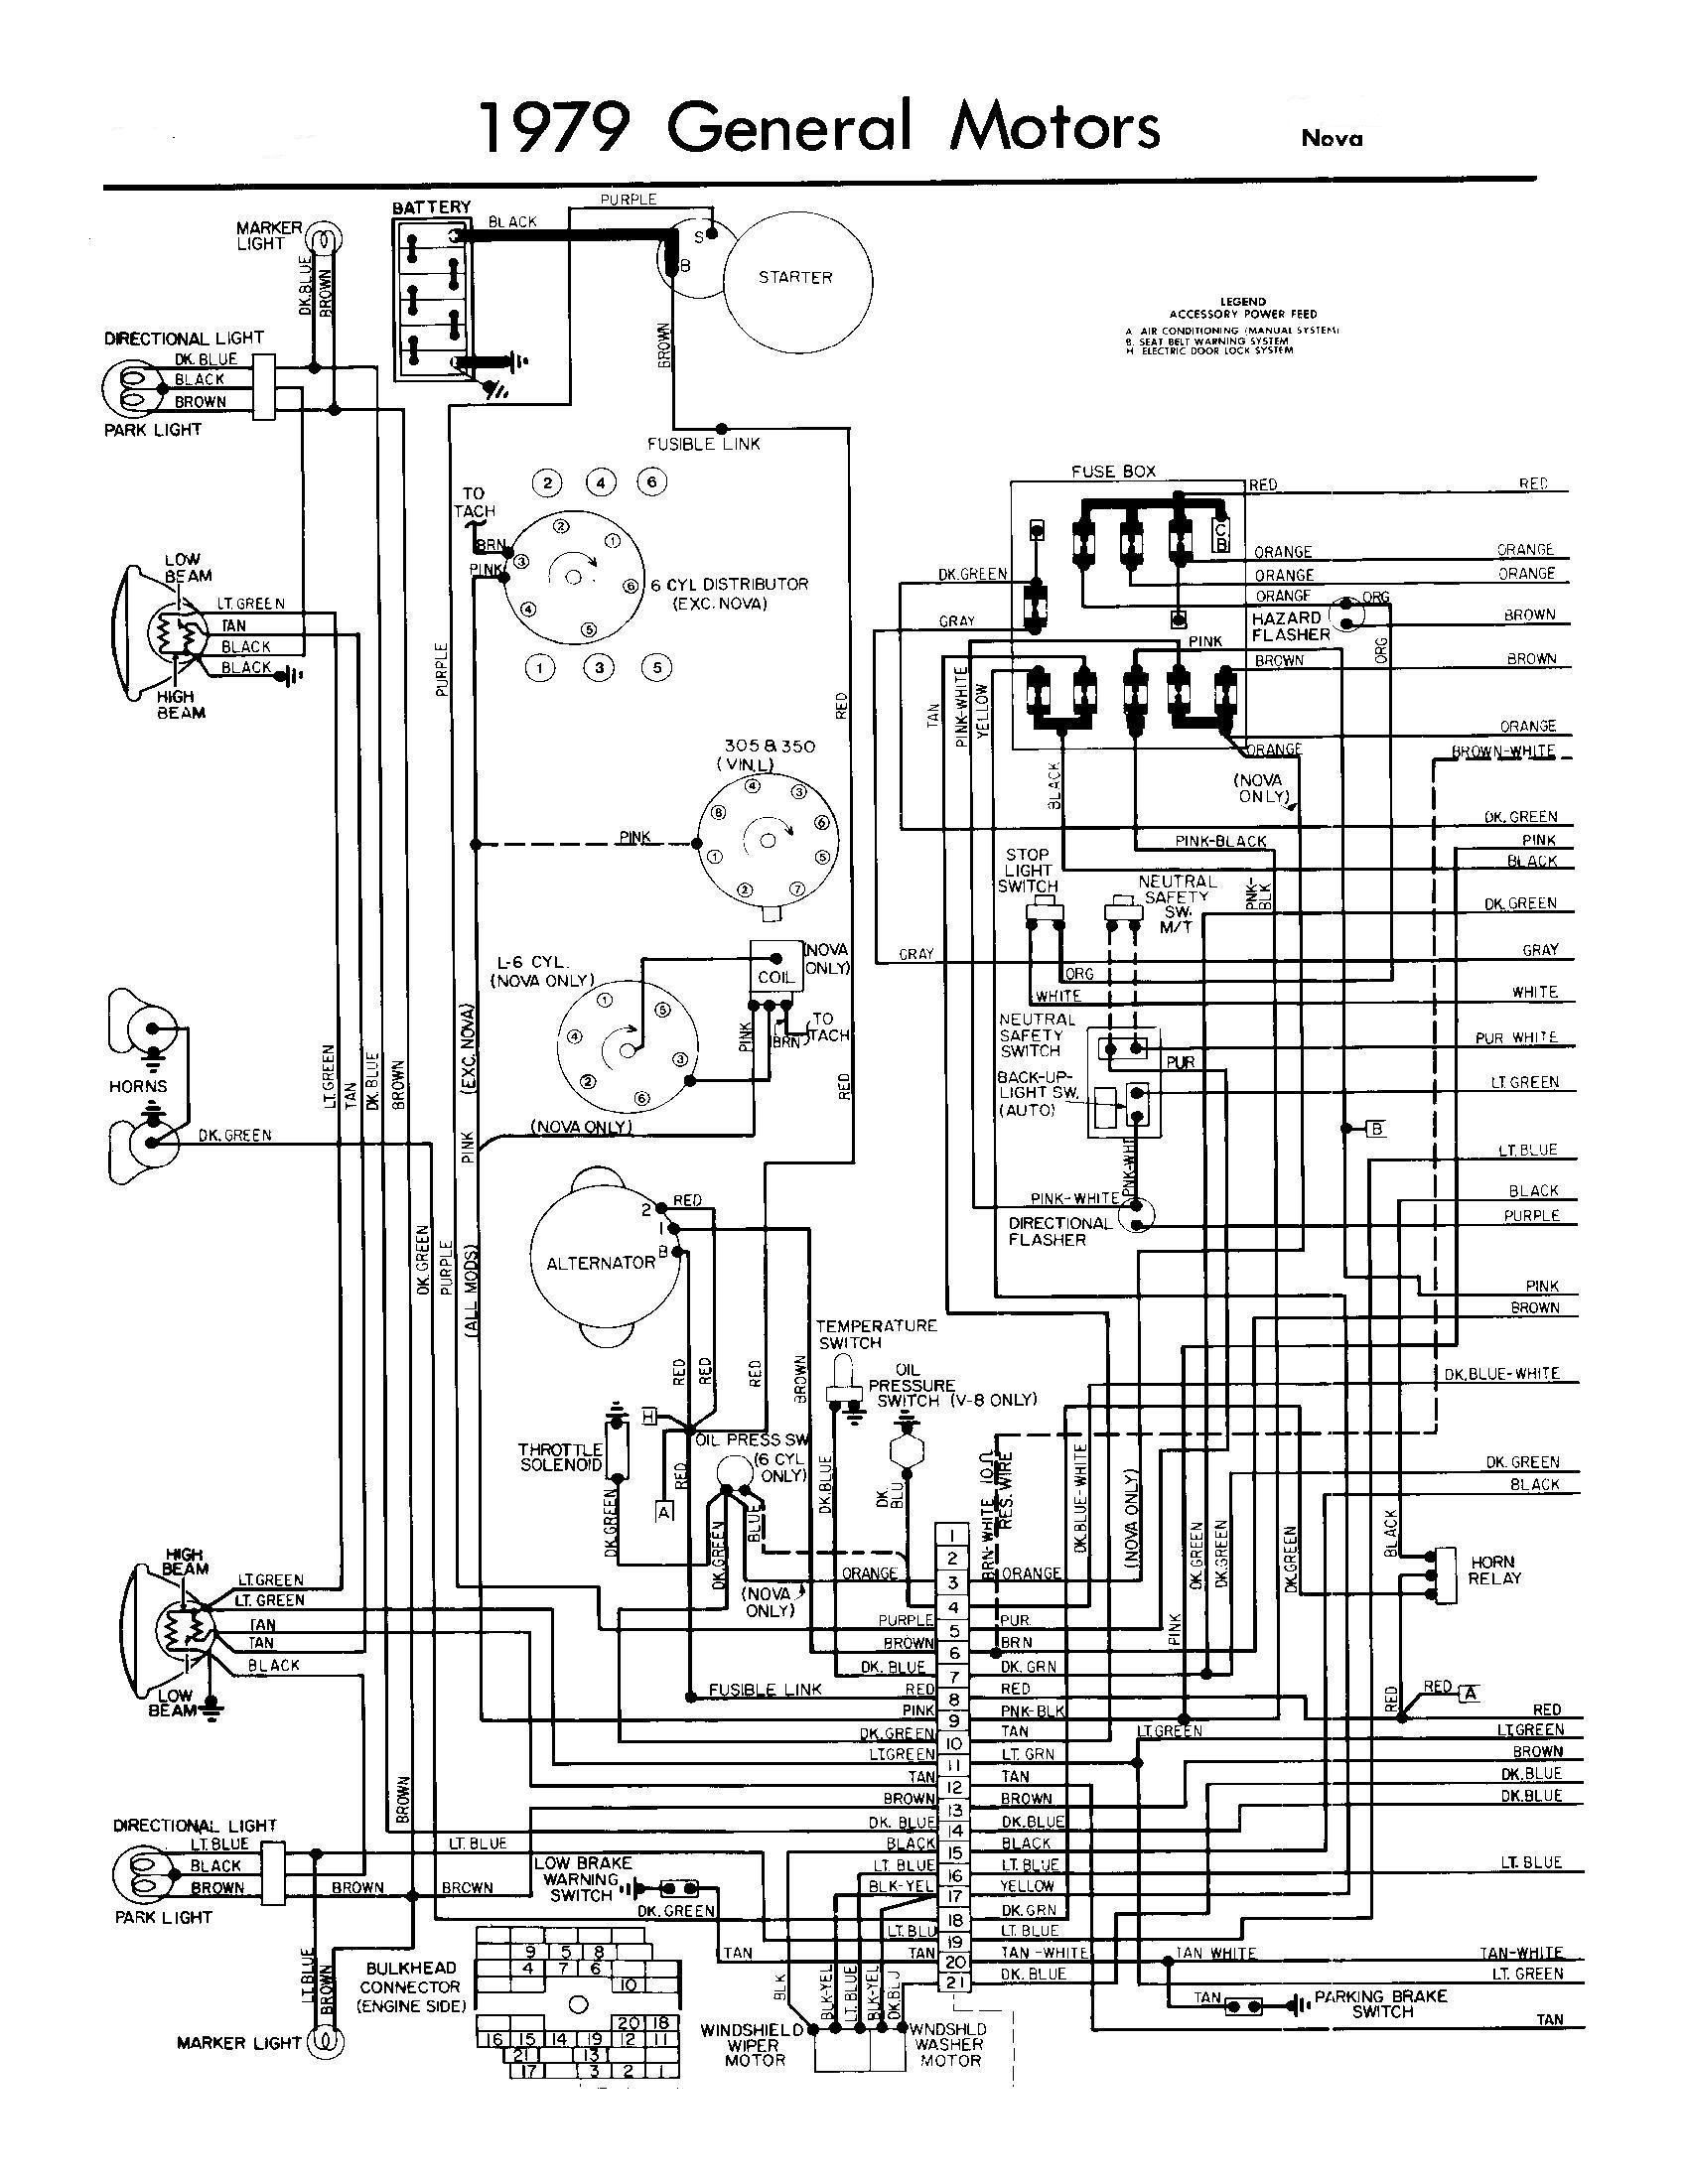 gm rds radio wiring diagram